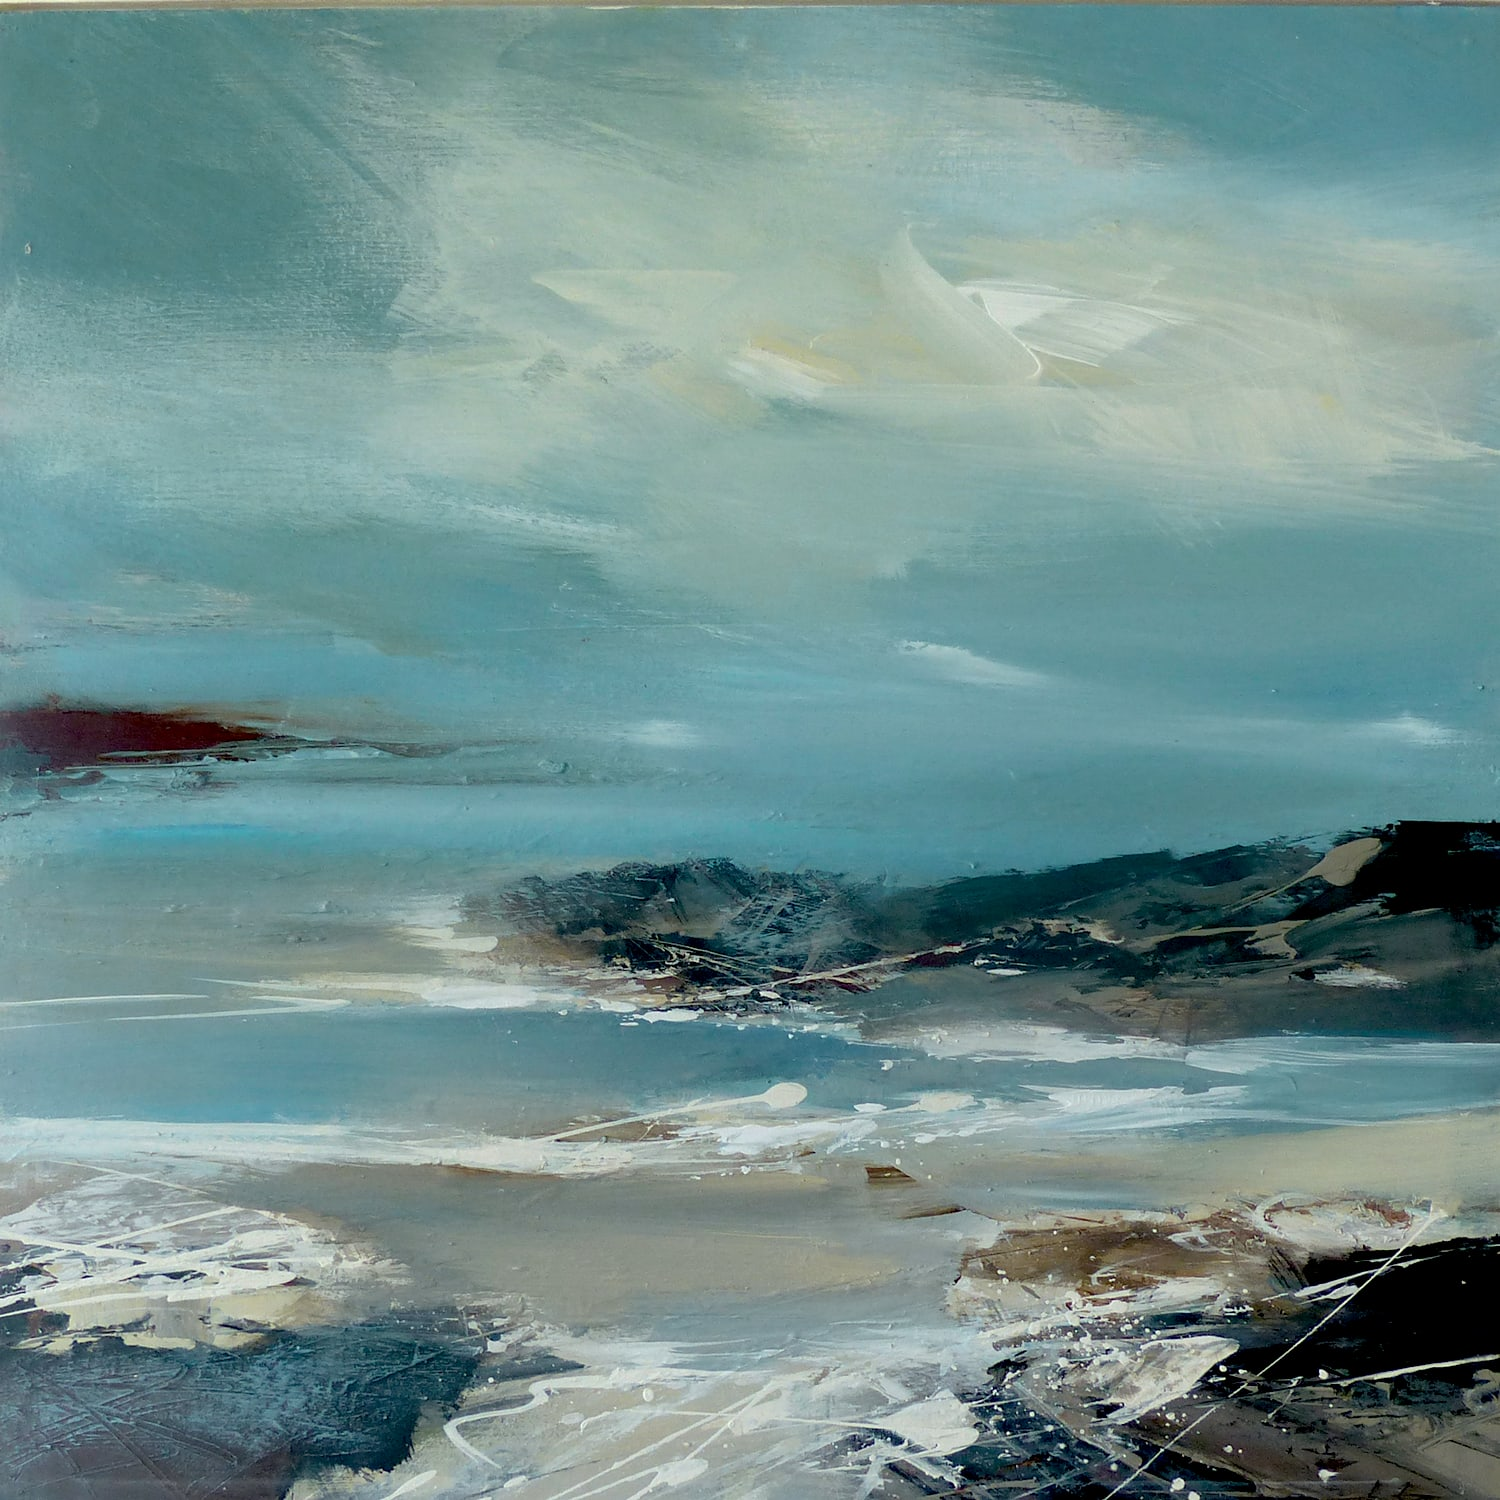 """<span class=""""link fancybox-details-link""""><a href=""""/store/artworks/7946-jenny-hirst-end-of-the-day-2021/"""">View Detail Page</a></span><div class=""""artist""""><strong>Jenny Hirst</strong></div> <div class=""""title""""><em>End of the Day</em>, 2021</div> <div class=""""medium"""">acrylic on panel with broad white frame</div> <div class=""""dimensions"""">h. 40 cm x w. 40 cm <br /> Framed size: h. 50 cm x w. 50 cm </div><div class=""""price"""">£700.00</div><div class=""""copyright_line"""">Own Art: £70 x 10 months, 0% APR</div>"""